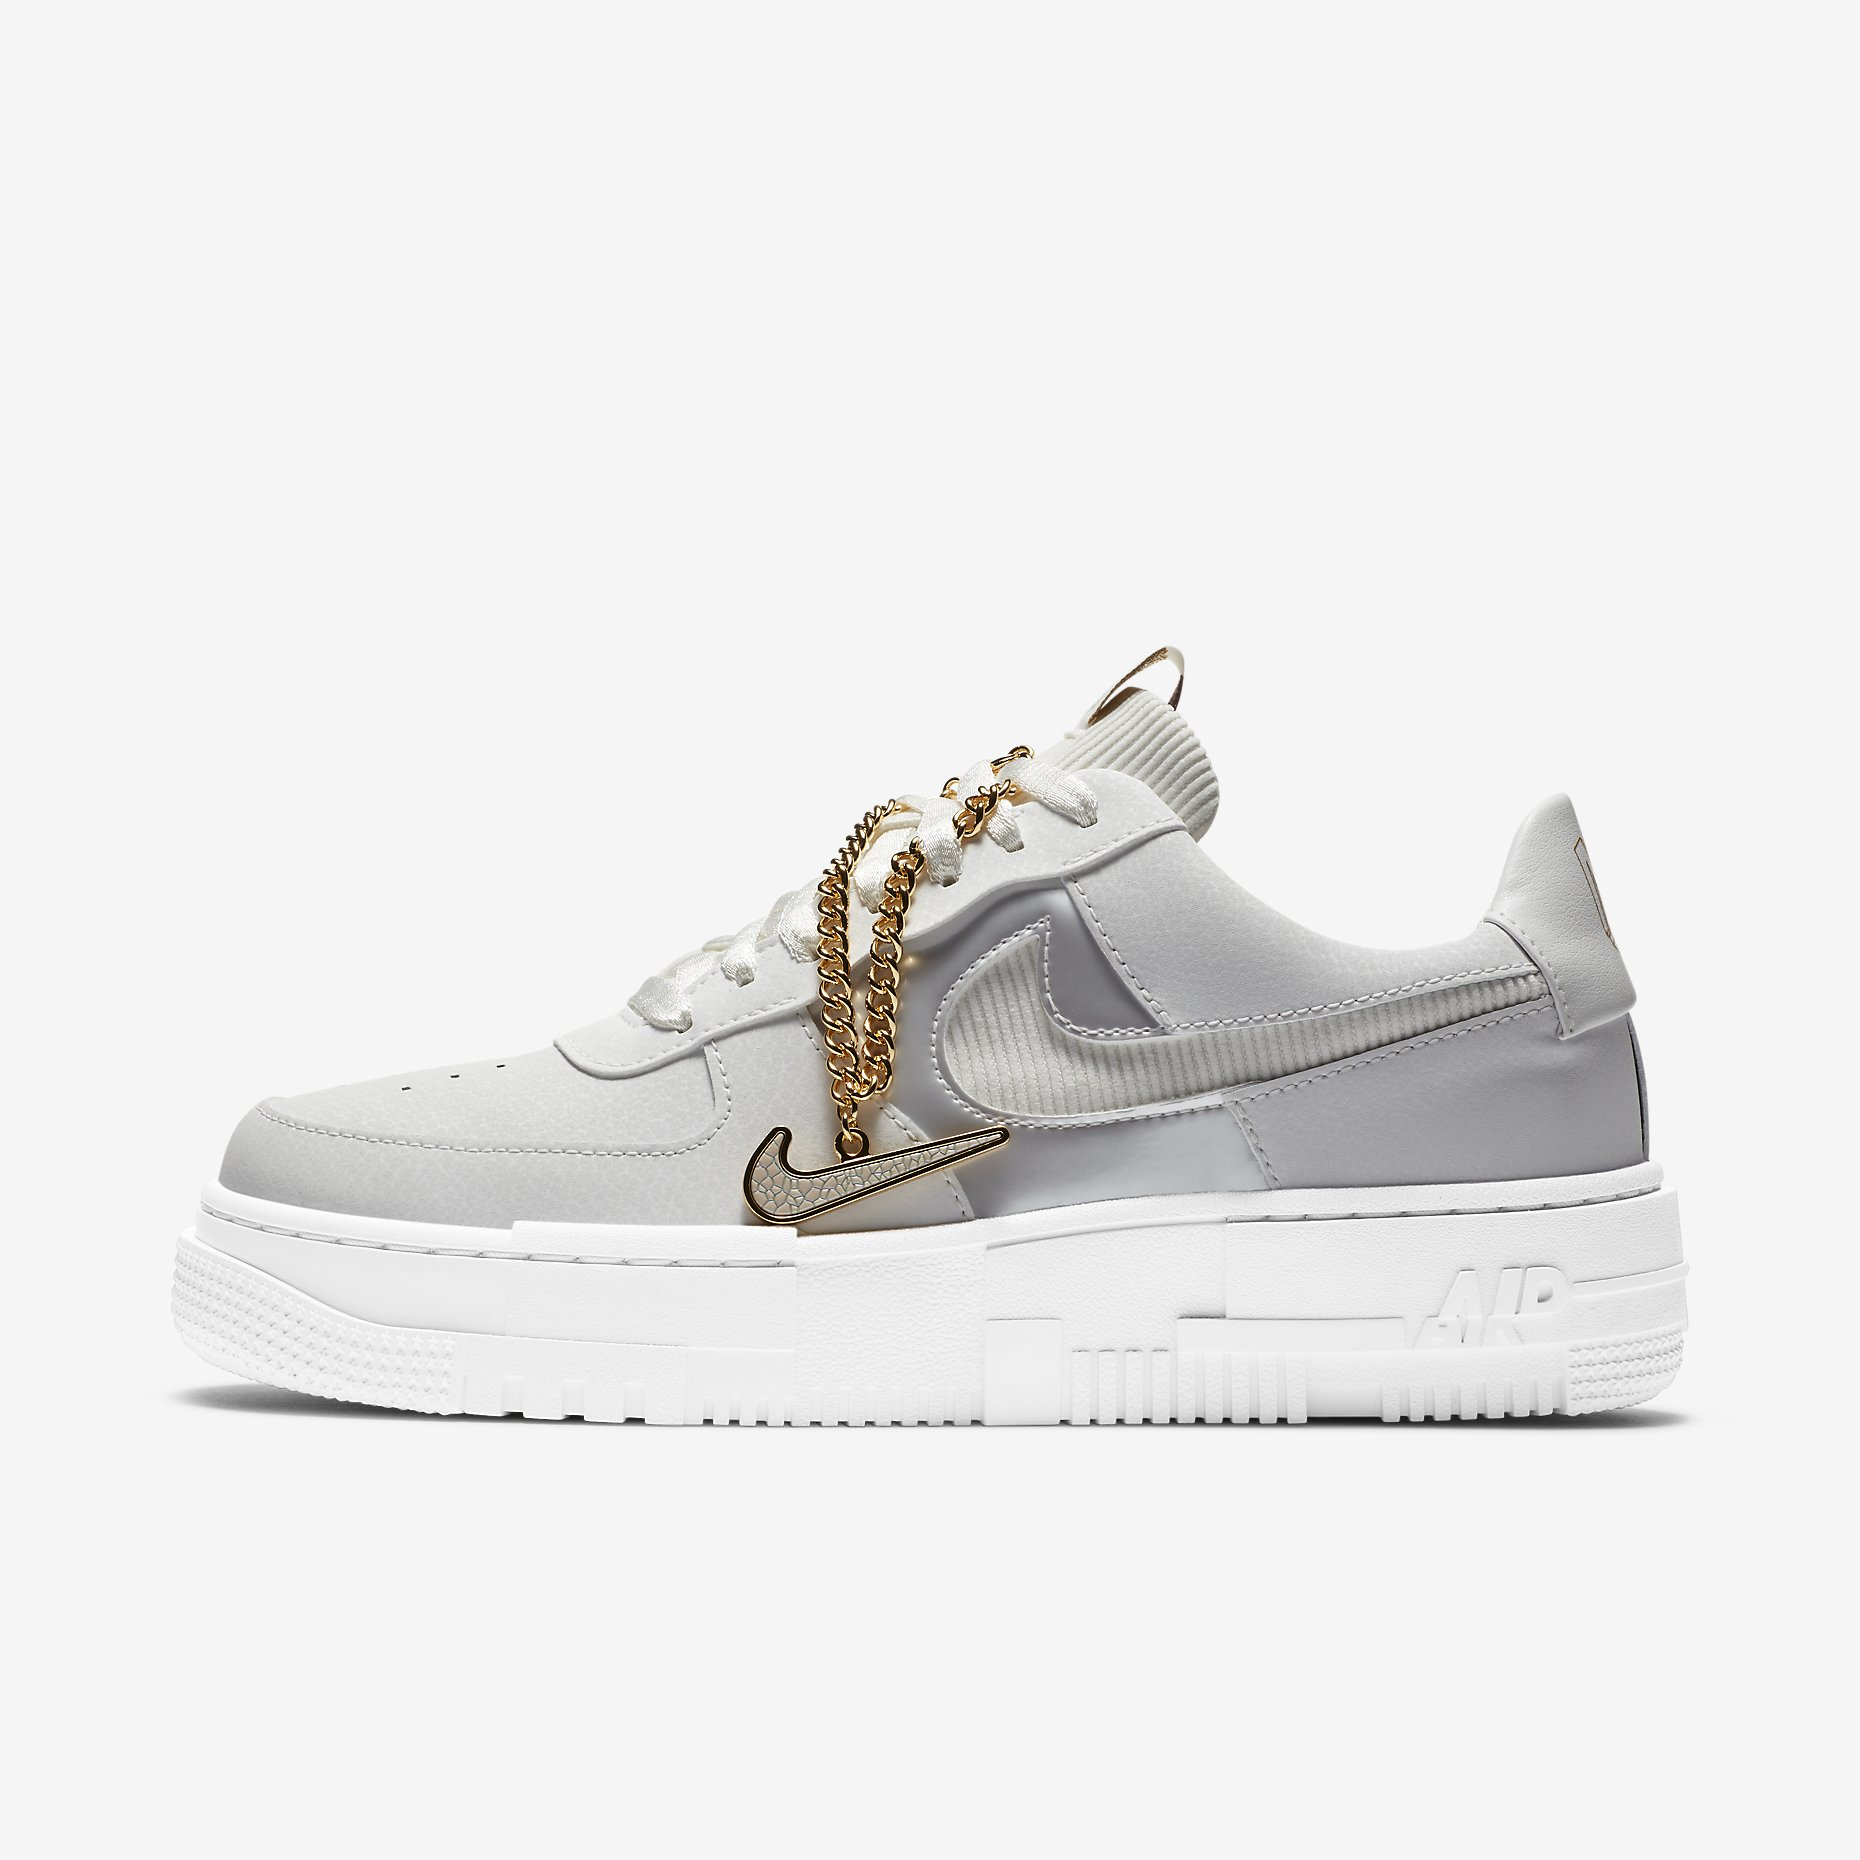 Women's Nike Air Force 1 Pixel 'Summit White/Dark Beetroot' }